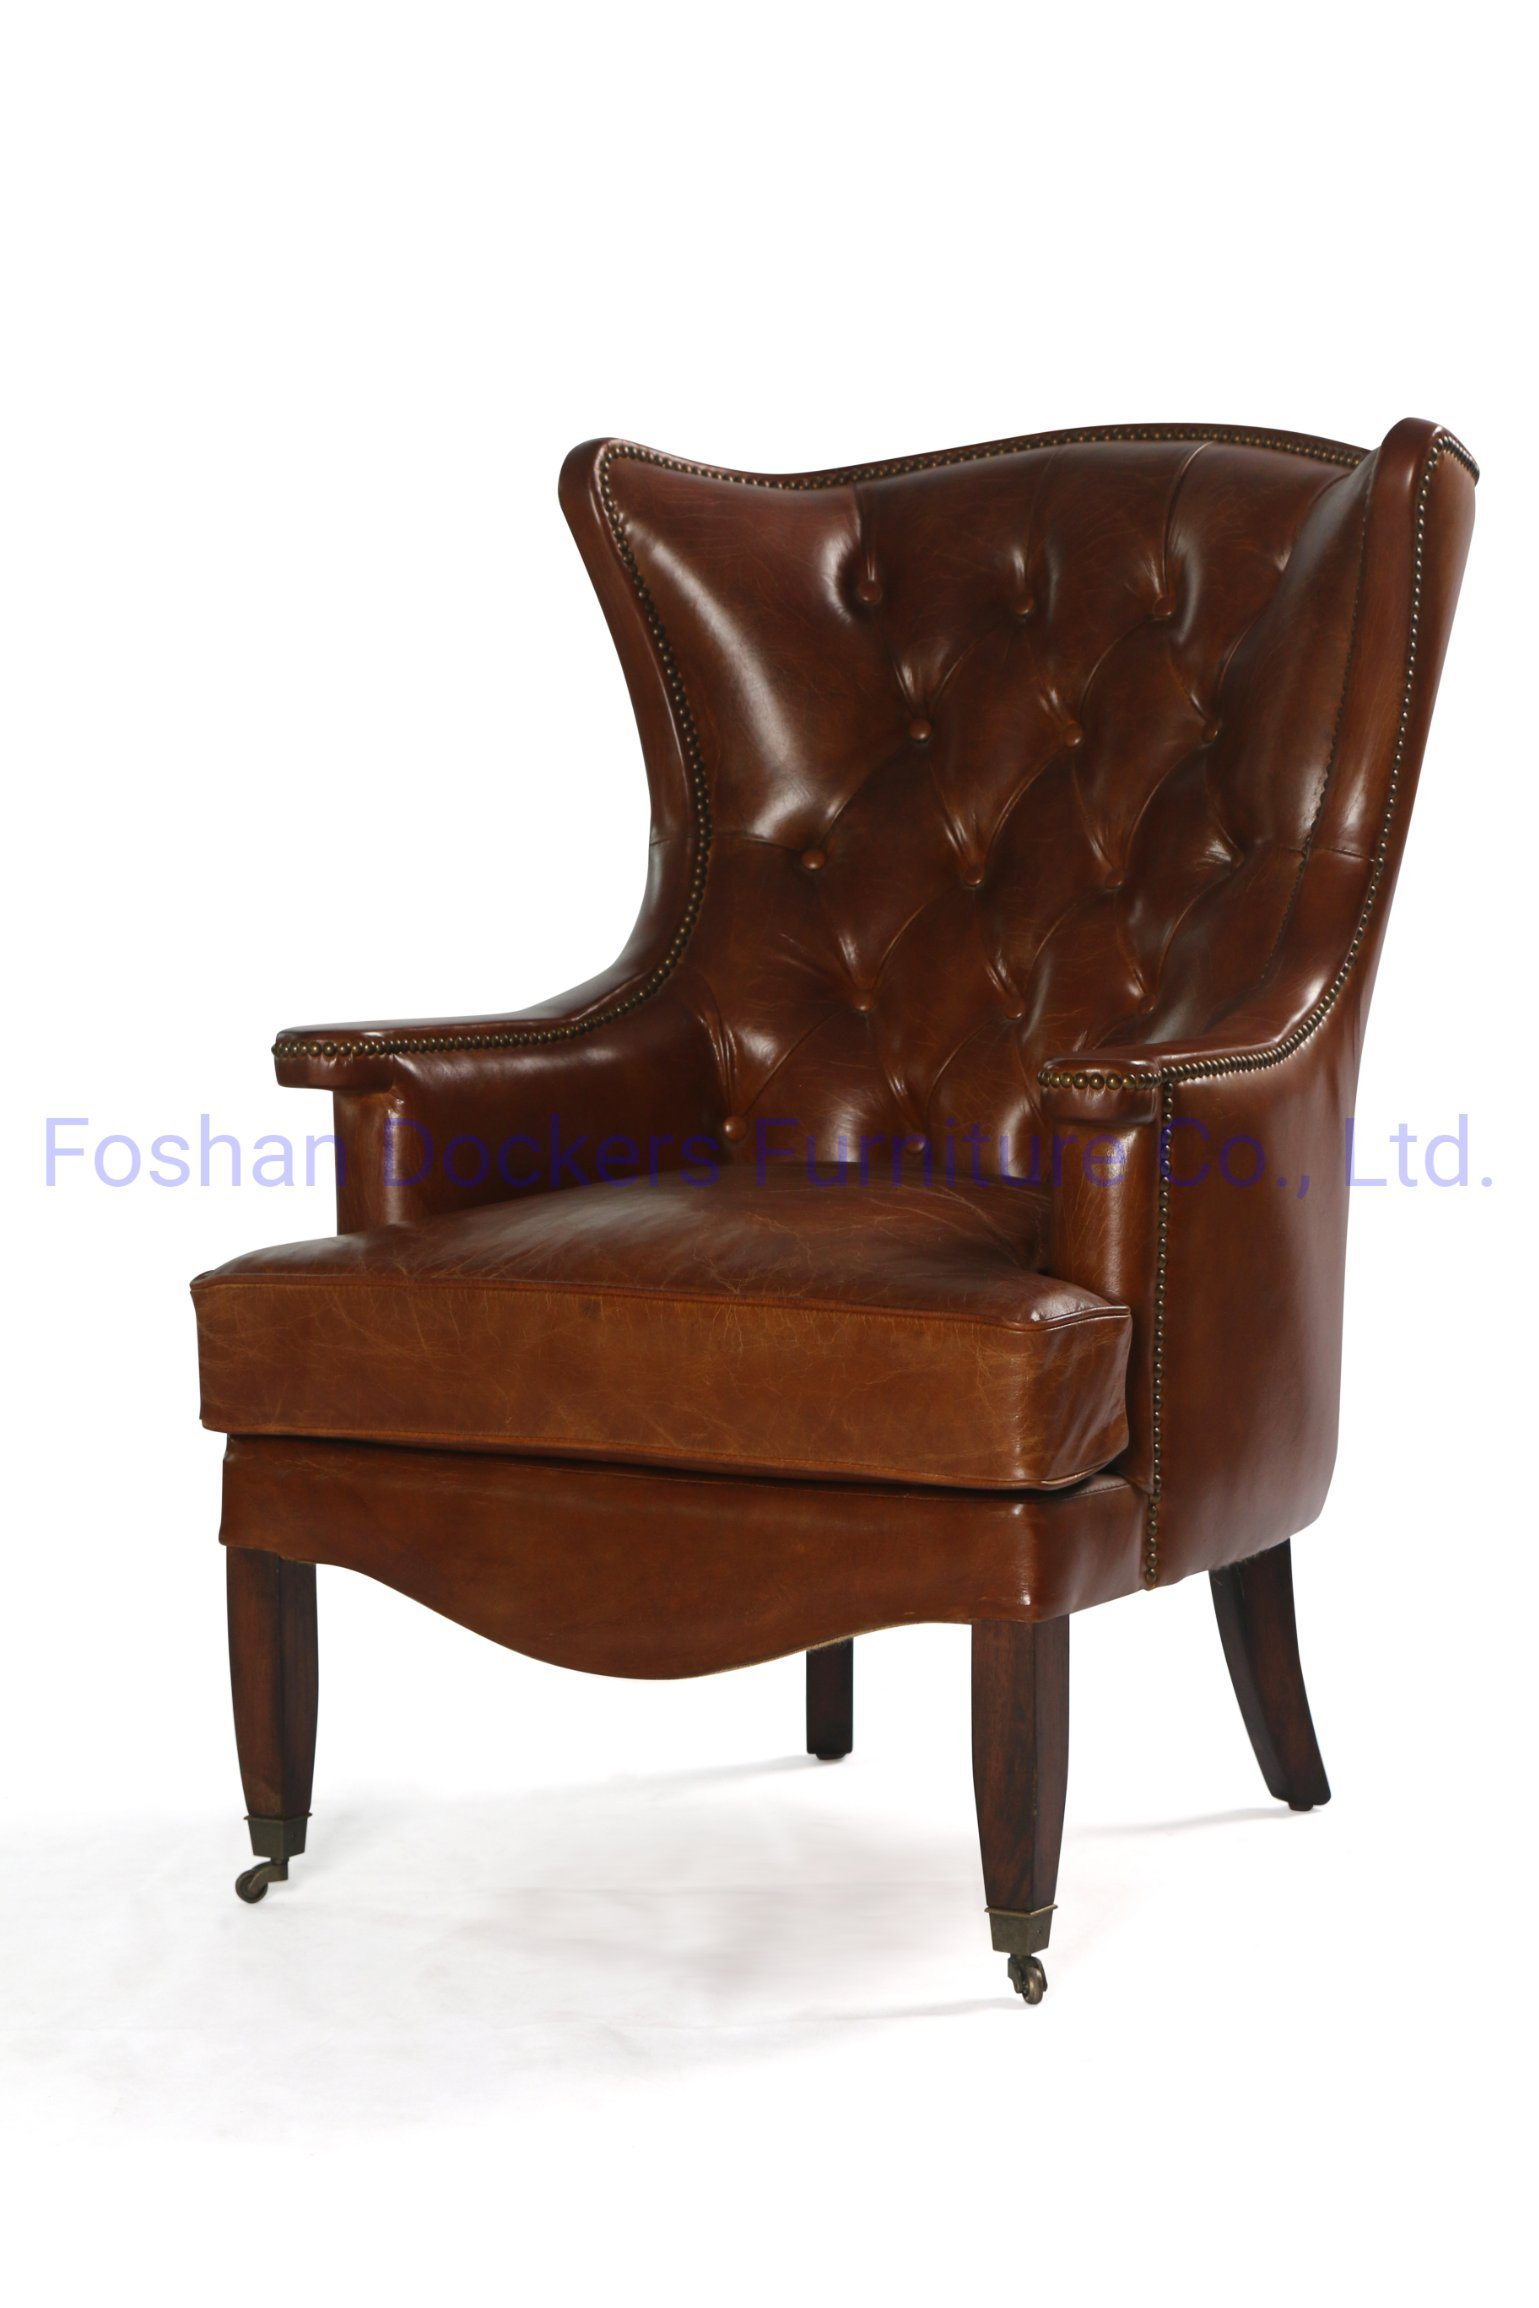 [Hot Item] High Quality Modern Living Room Furniture Single Seater Vintage Genuine Leather Luxury Wholesale Set Chinese Italy Dining Sofa